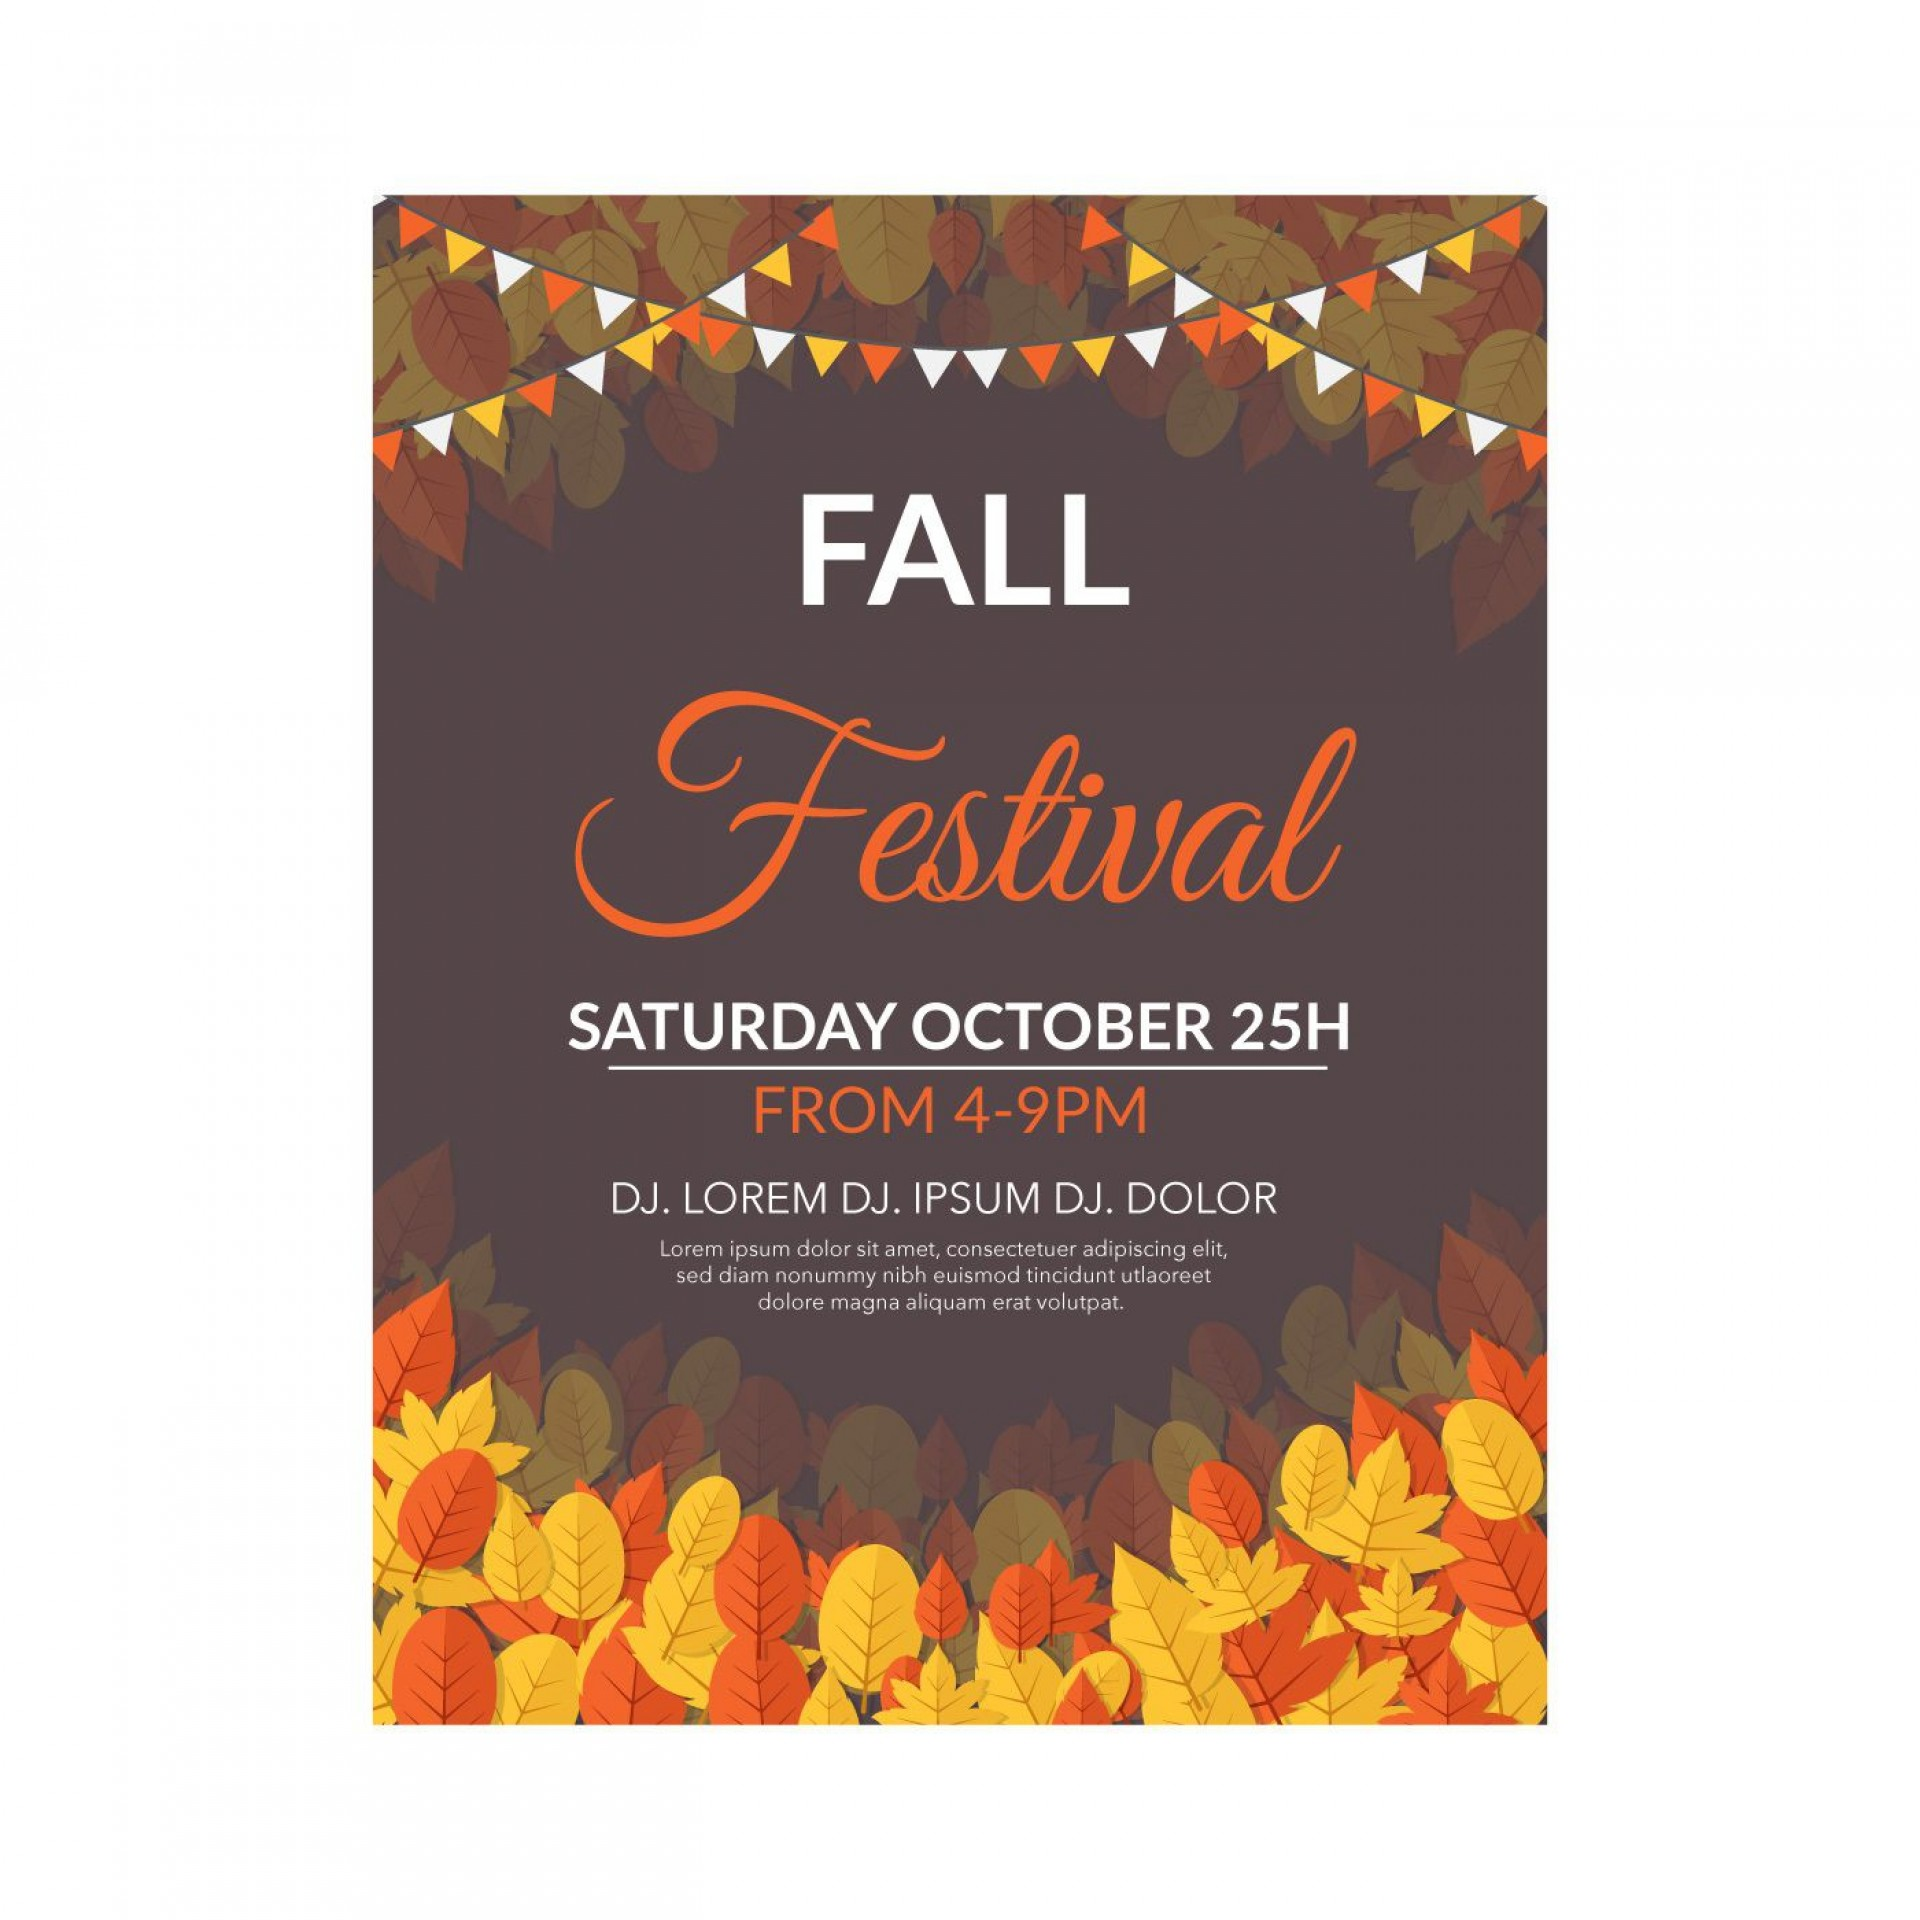 001 Formidable Fall Festival Flyer Template Design  Free1920